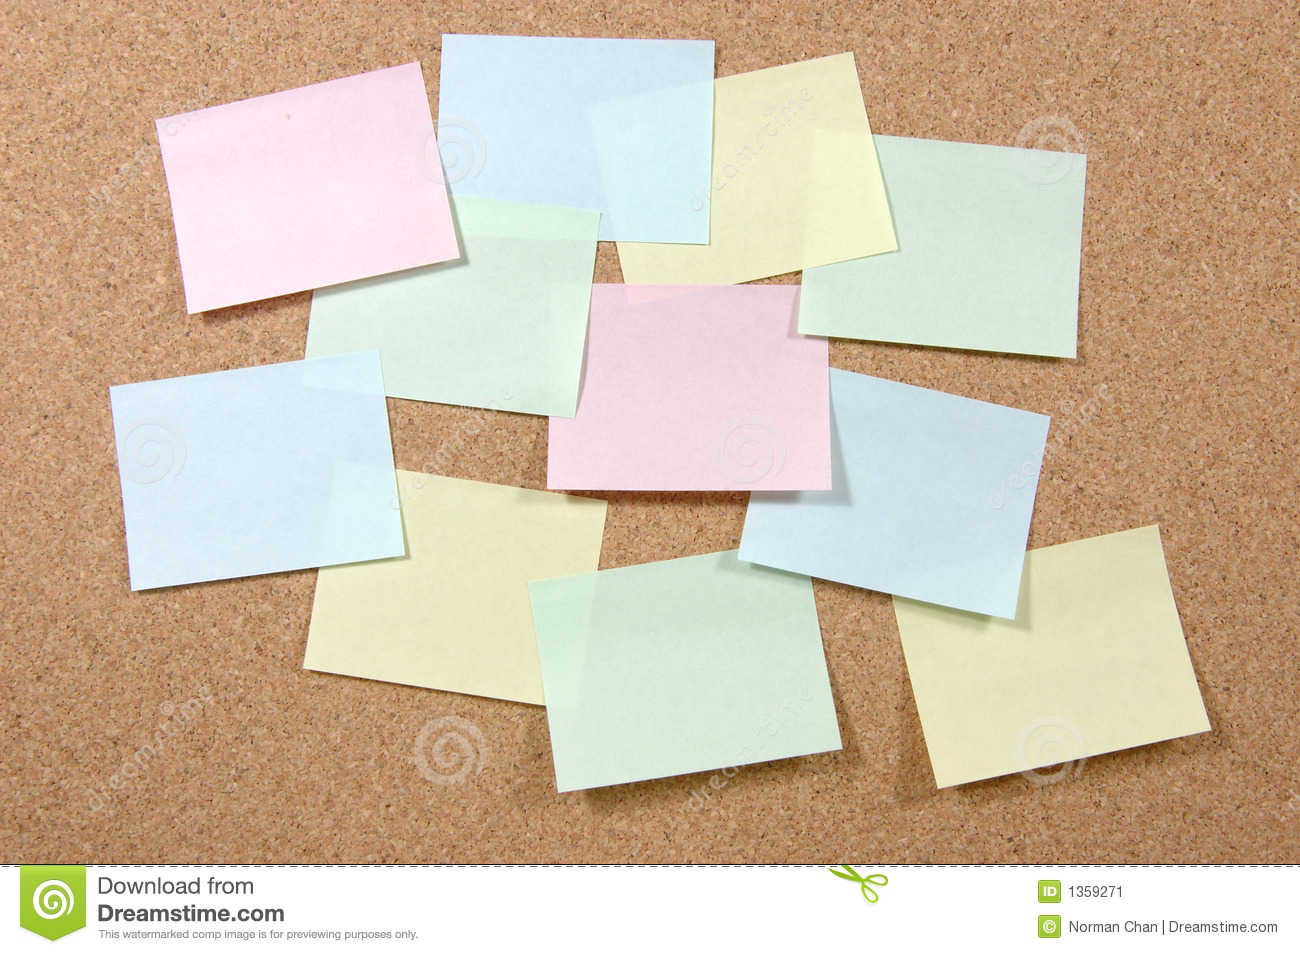 Colorful post-it notes